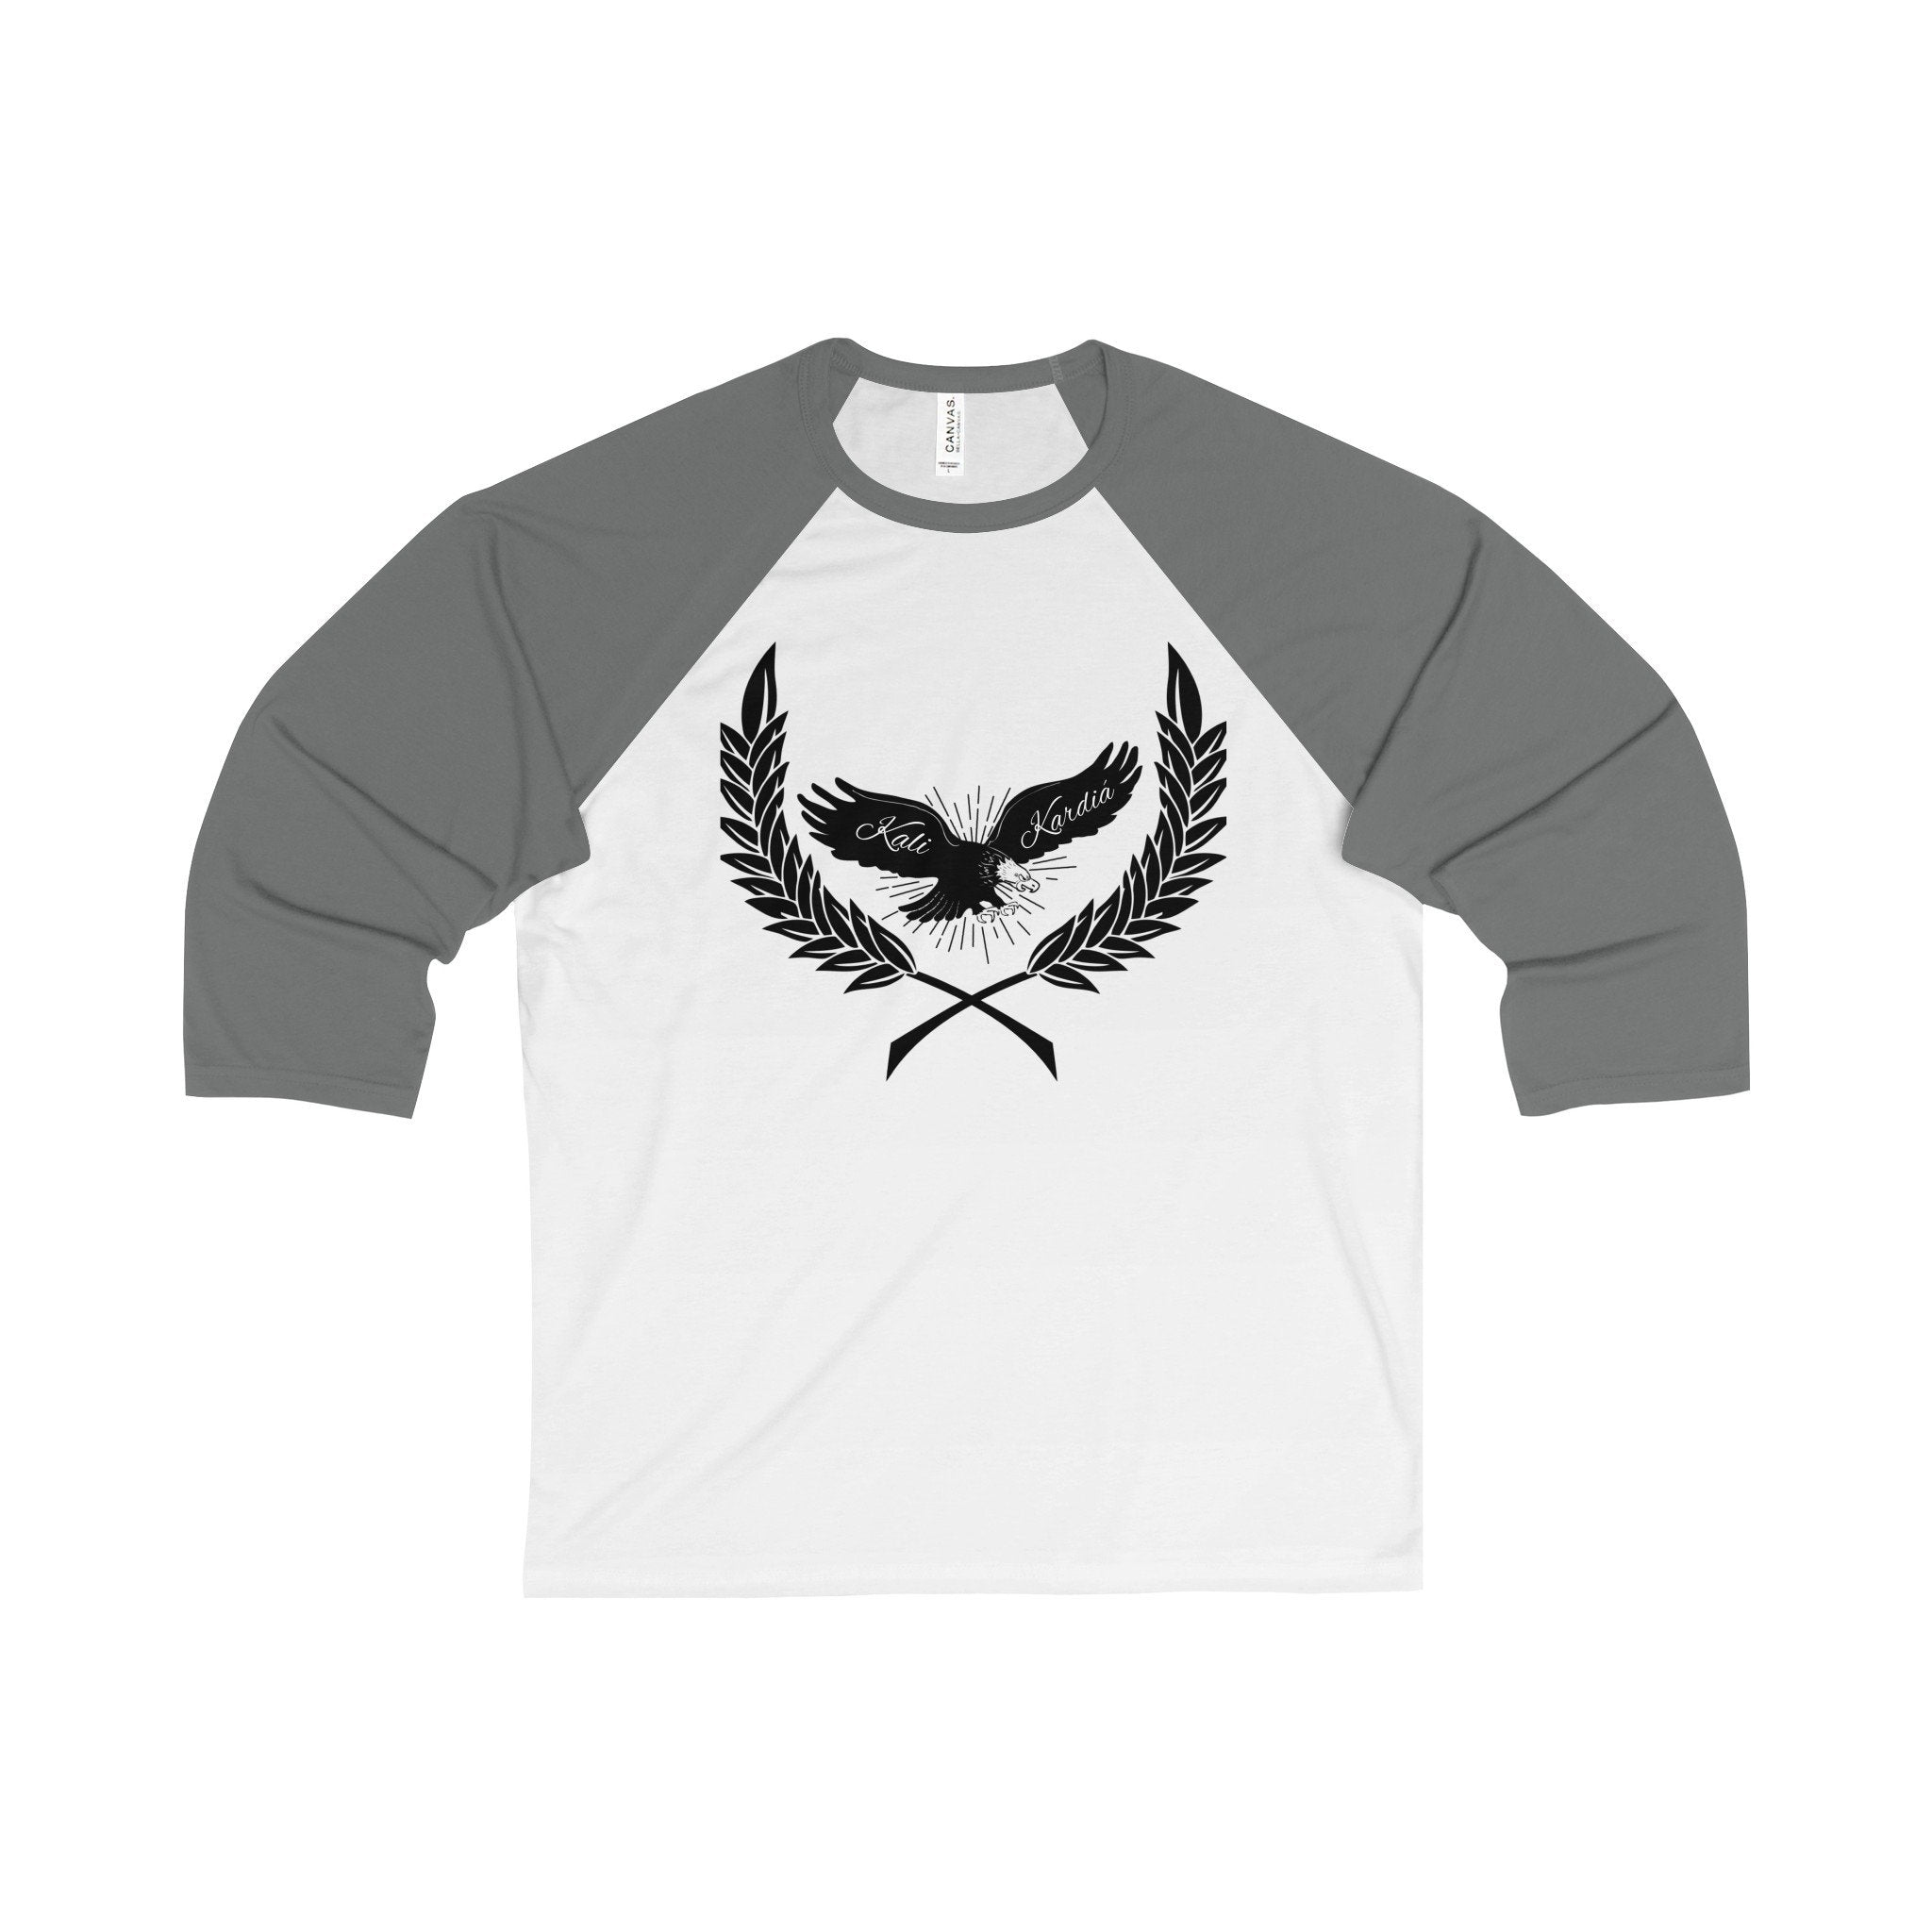 Eagles Fly Alone 3/4 Sleeve Baseball Tee